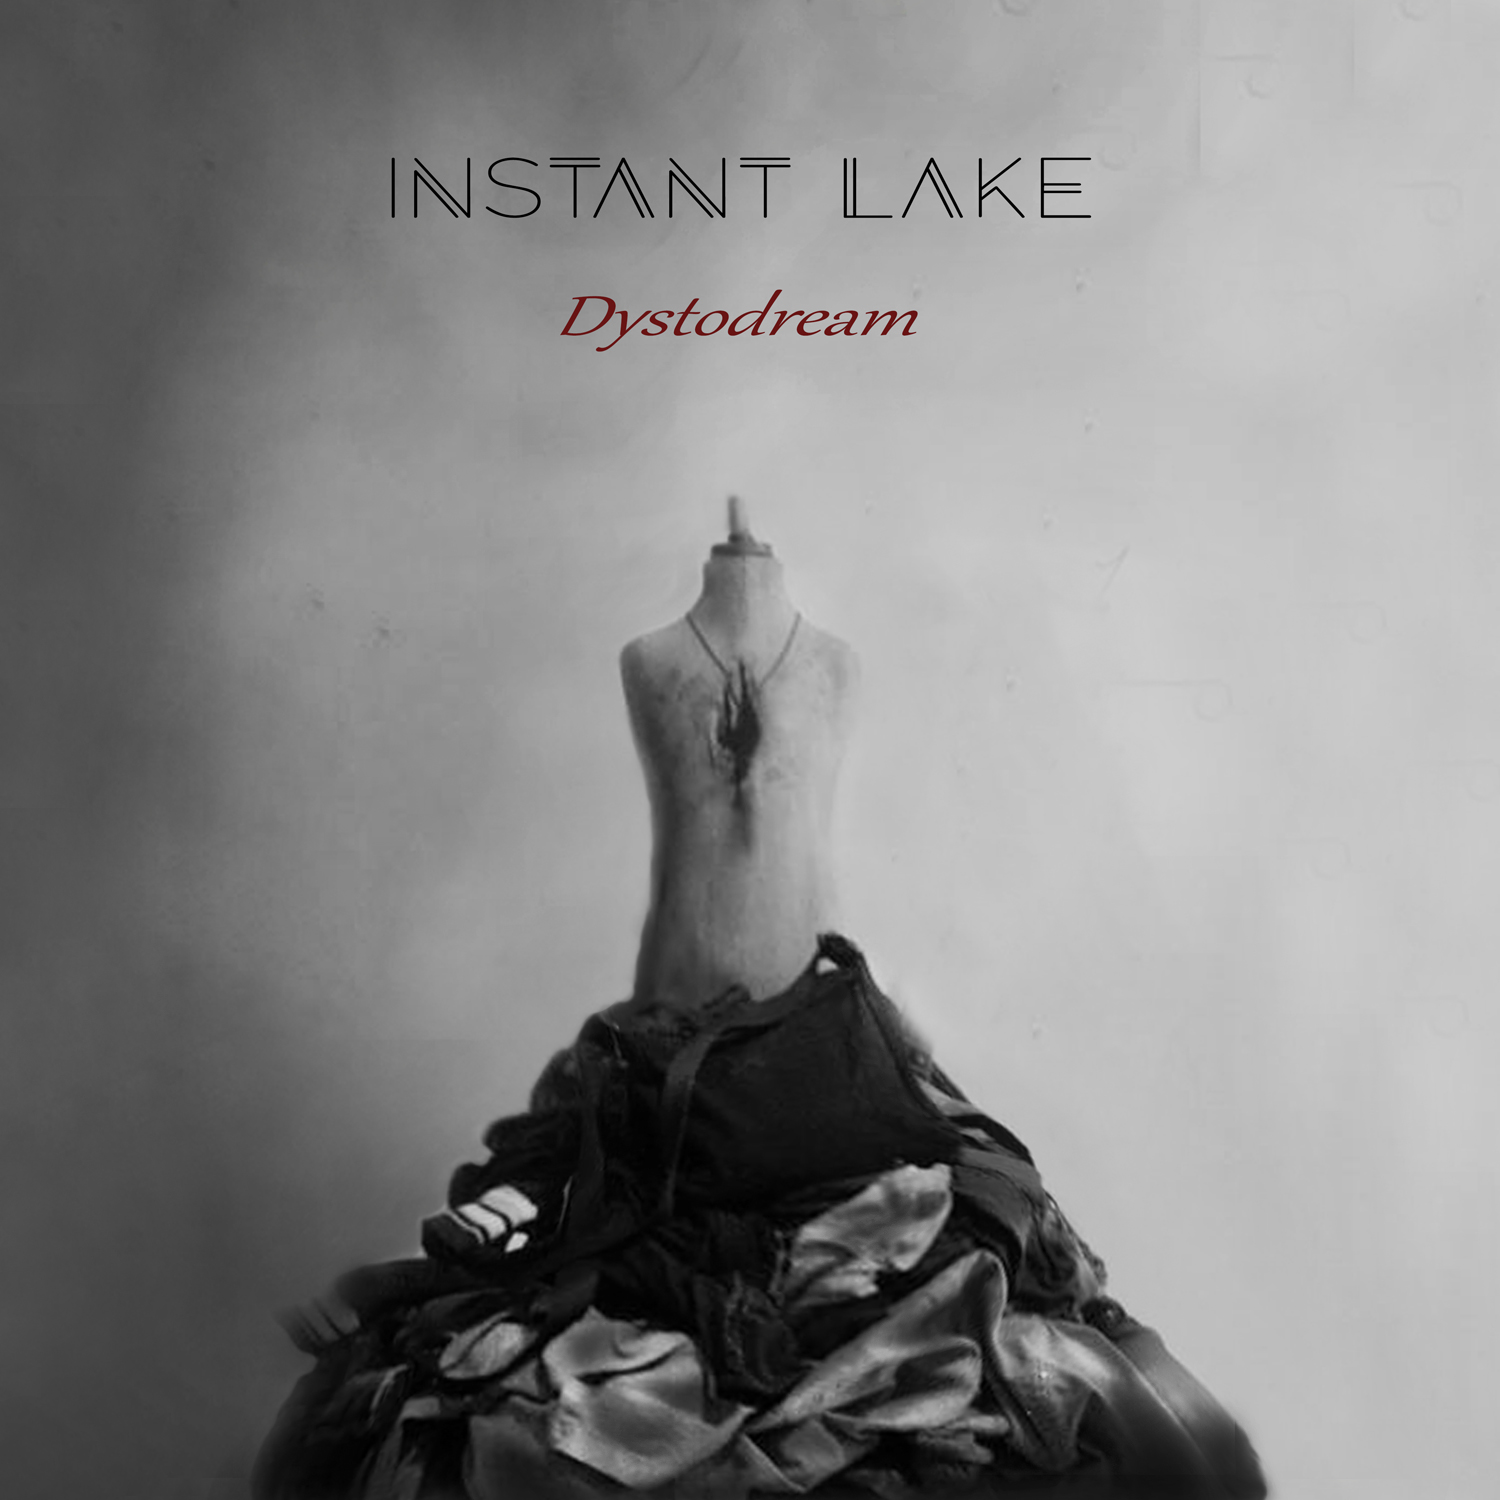 Instant Lake - dystodream